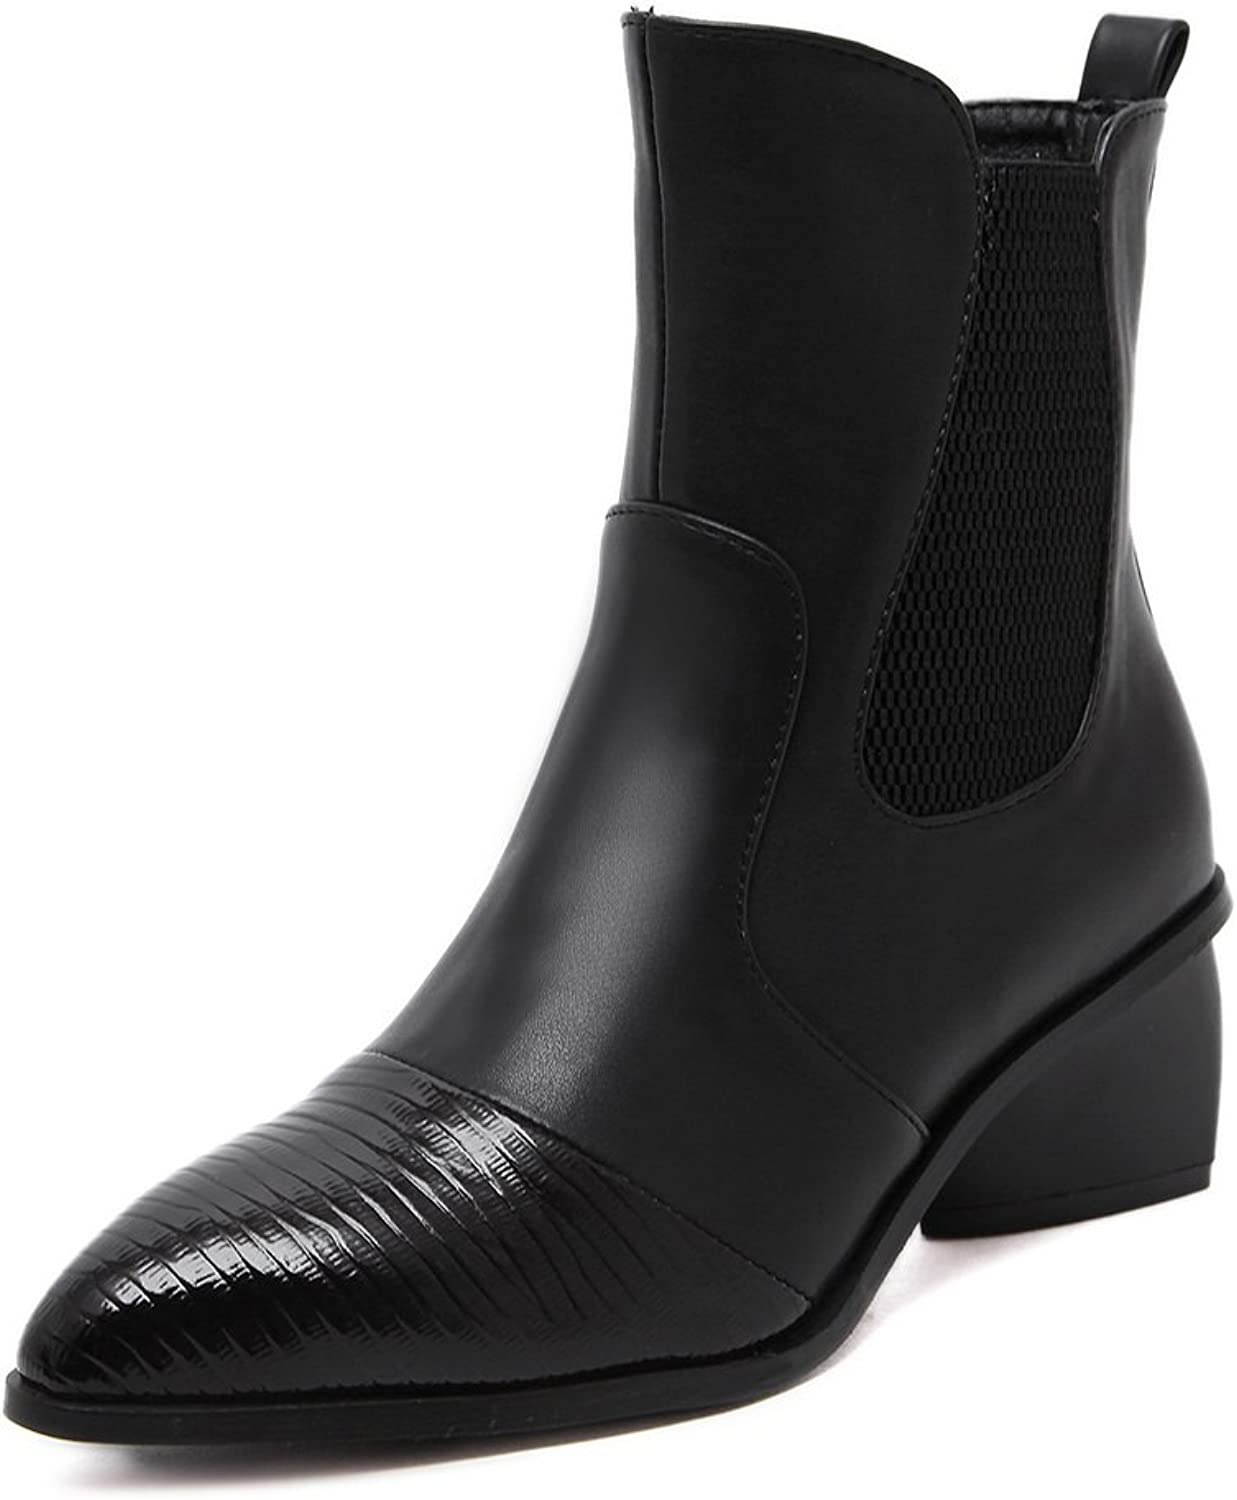 AdeeSu Womens Formal Pointed-Toe Two-Toned Urethane Boots